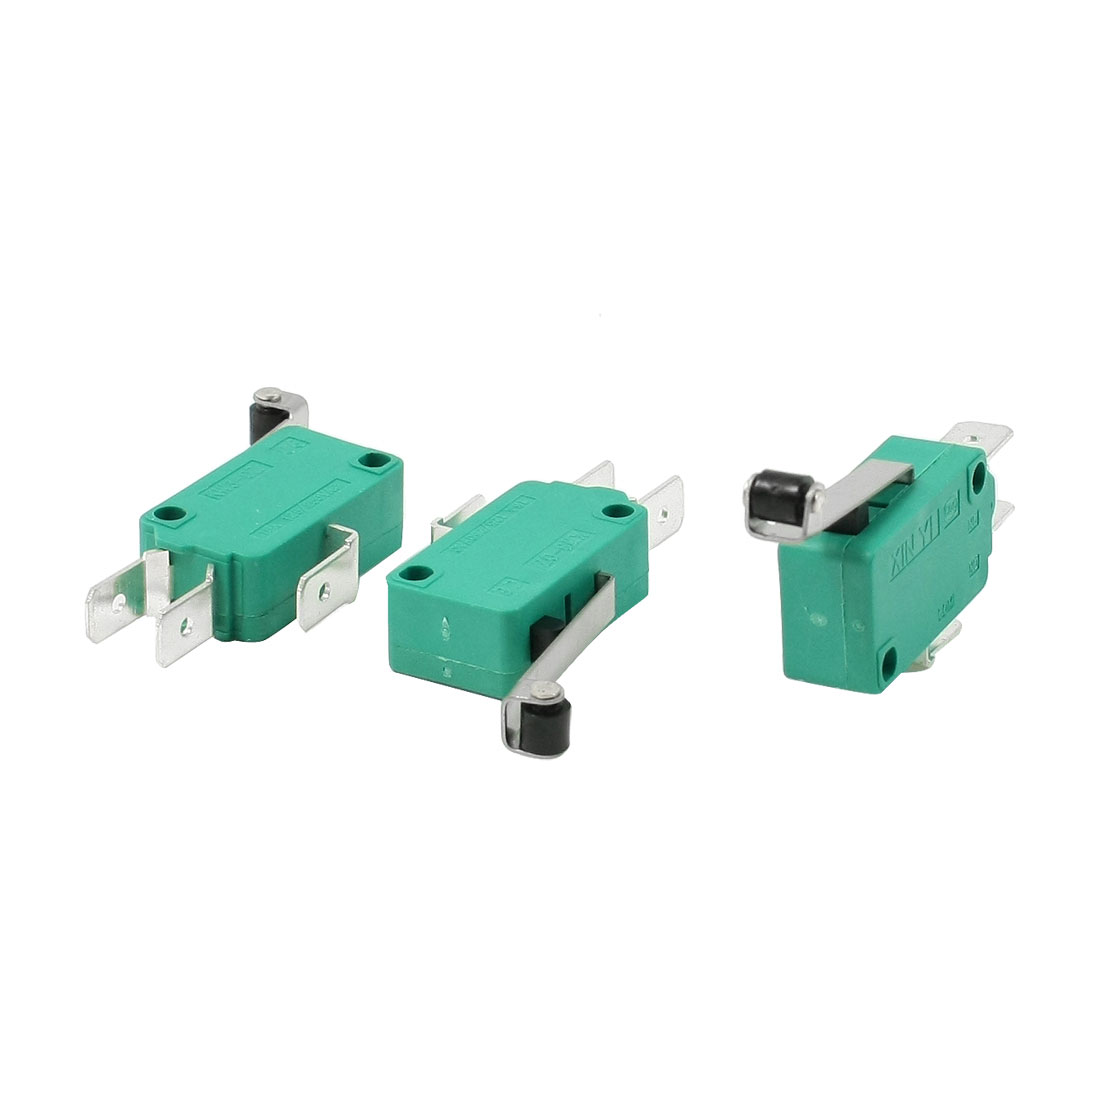 3 Pcs AC 250V 16A SPDT Long Hinge Roller Lever Momentary Micro Switch Green